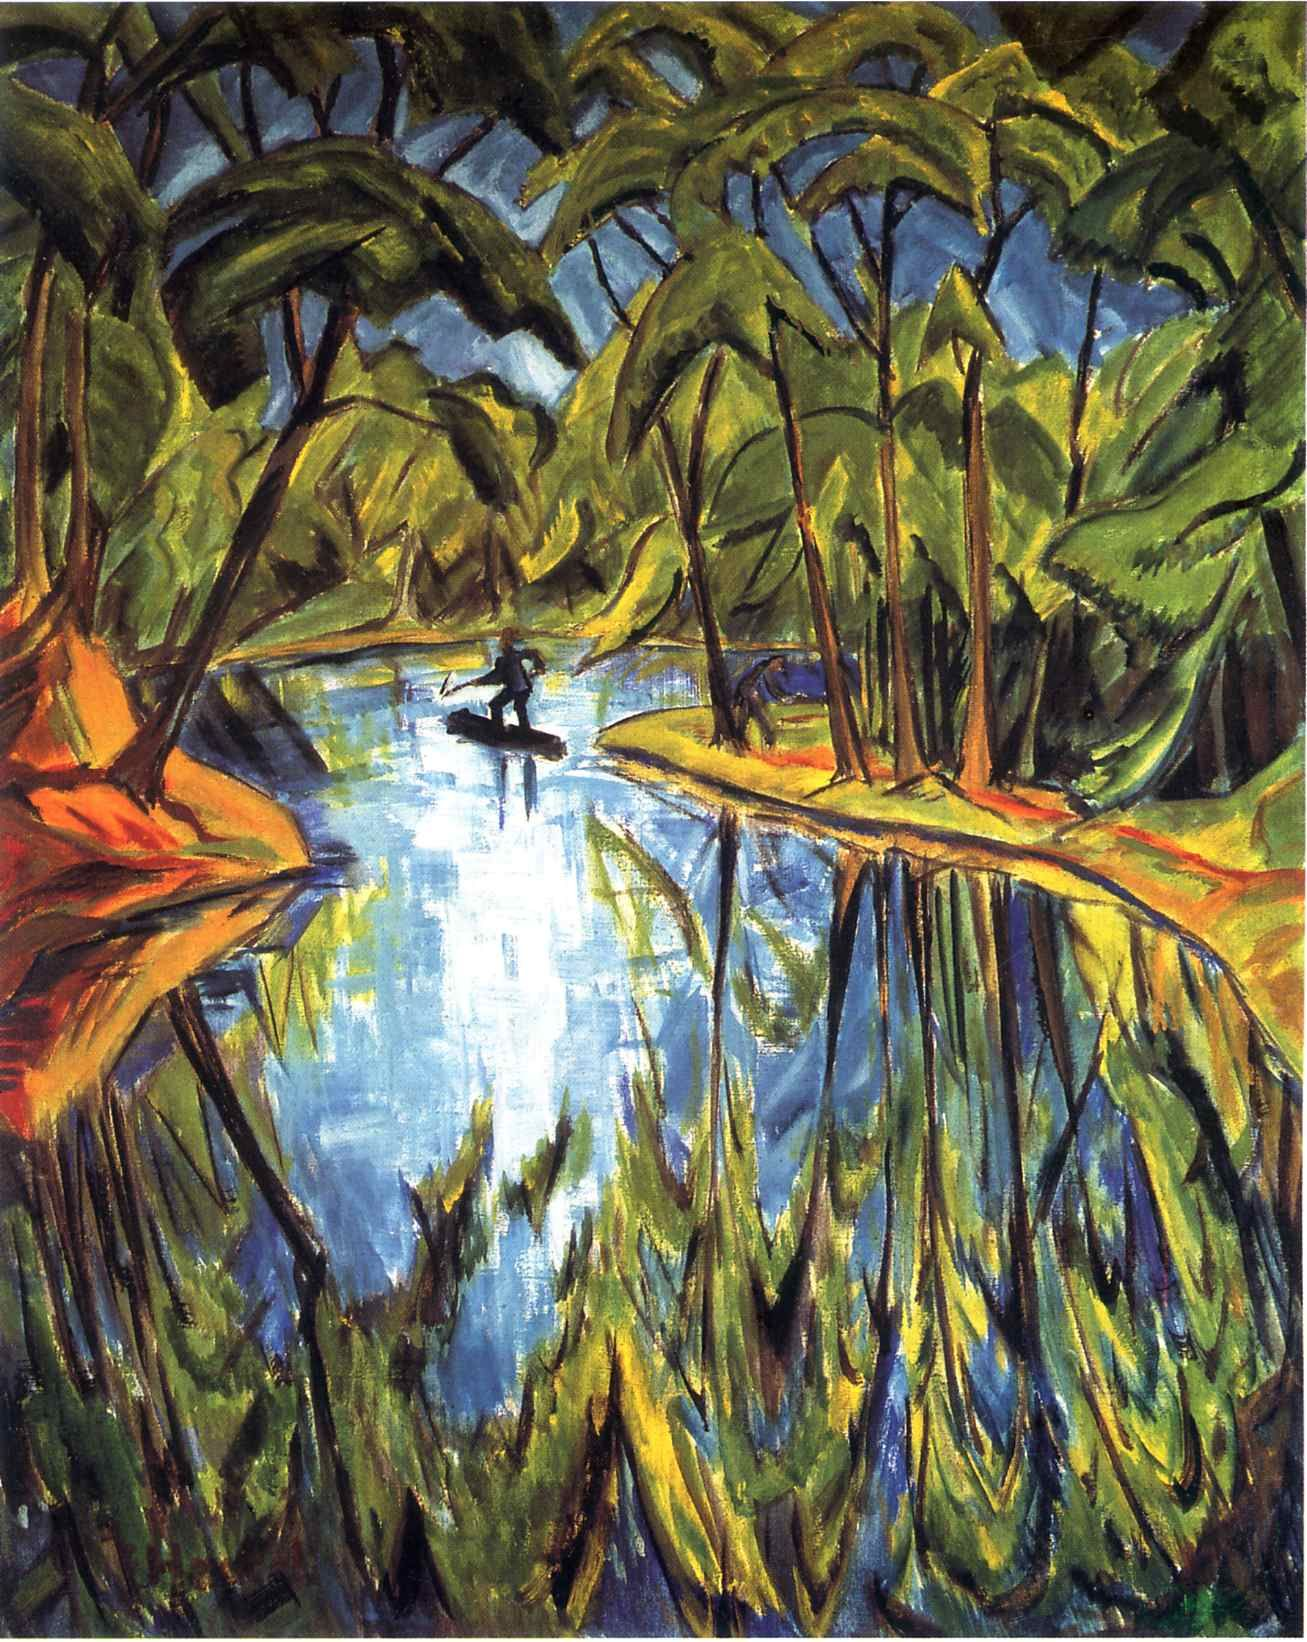 German Erich Heckel Expressionism Paintings